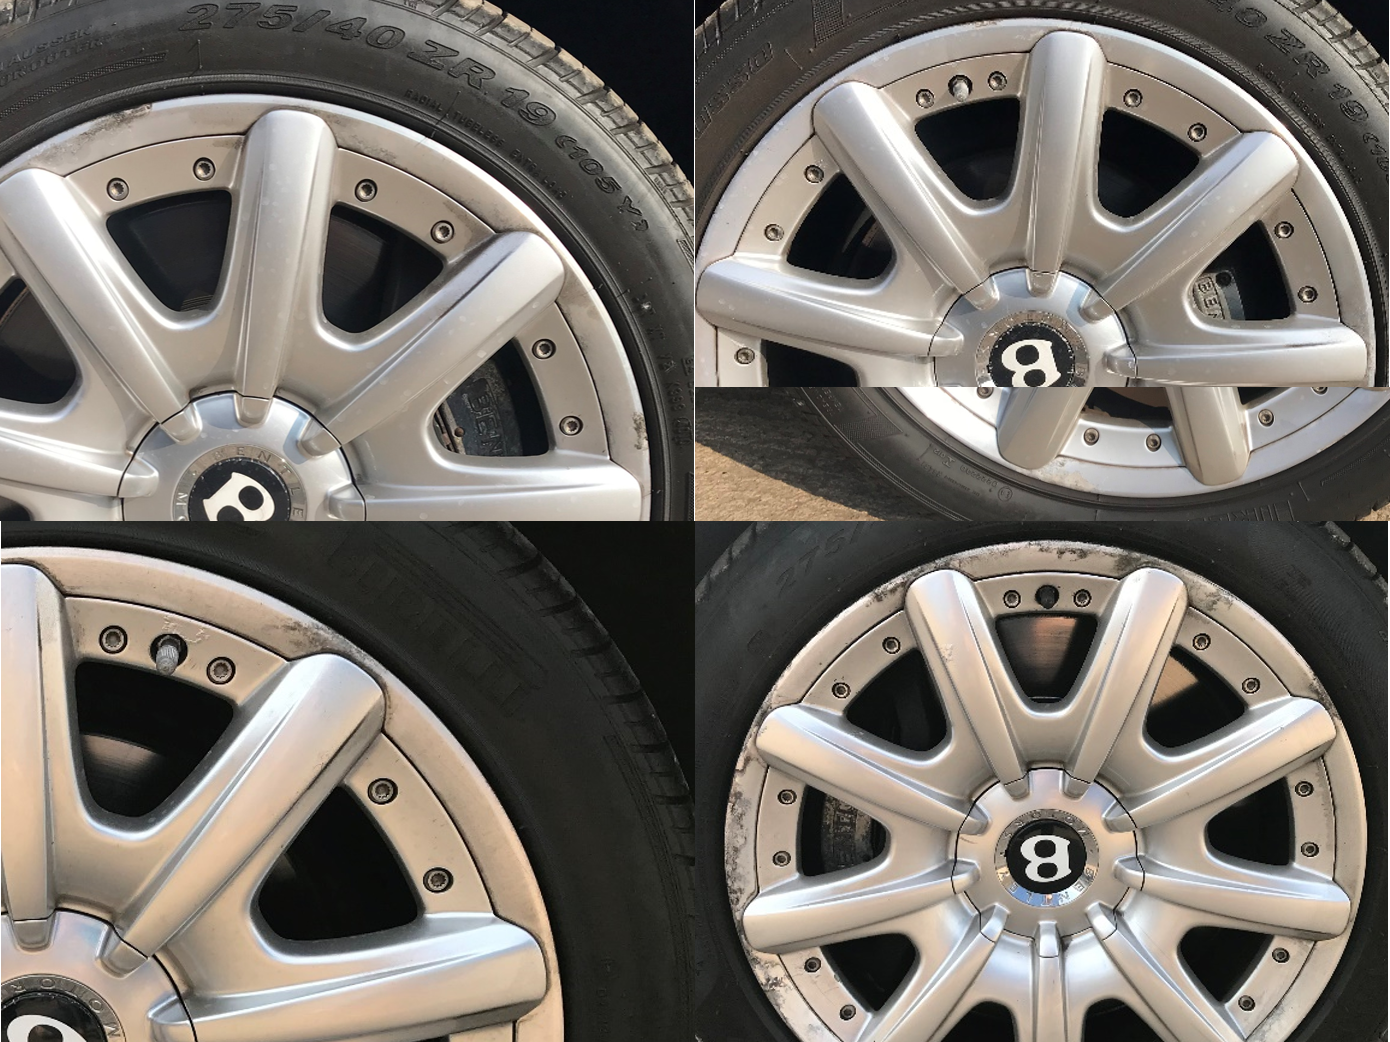 Bentley Continental GT Alloys Before Viezu Refurb